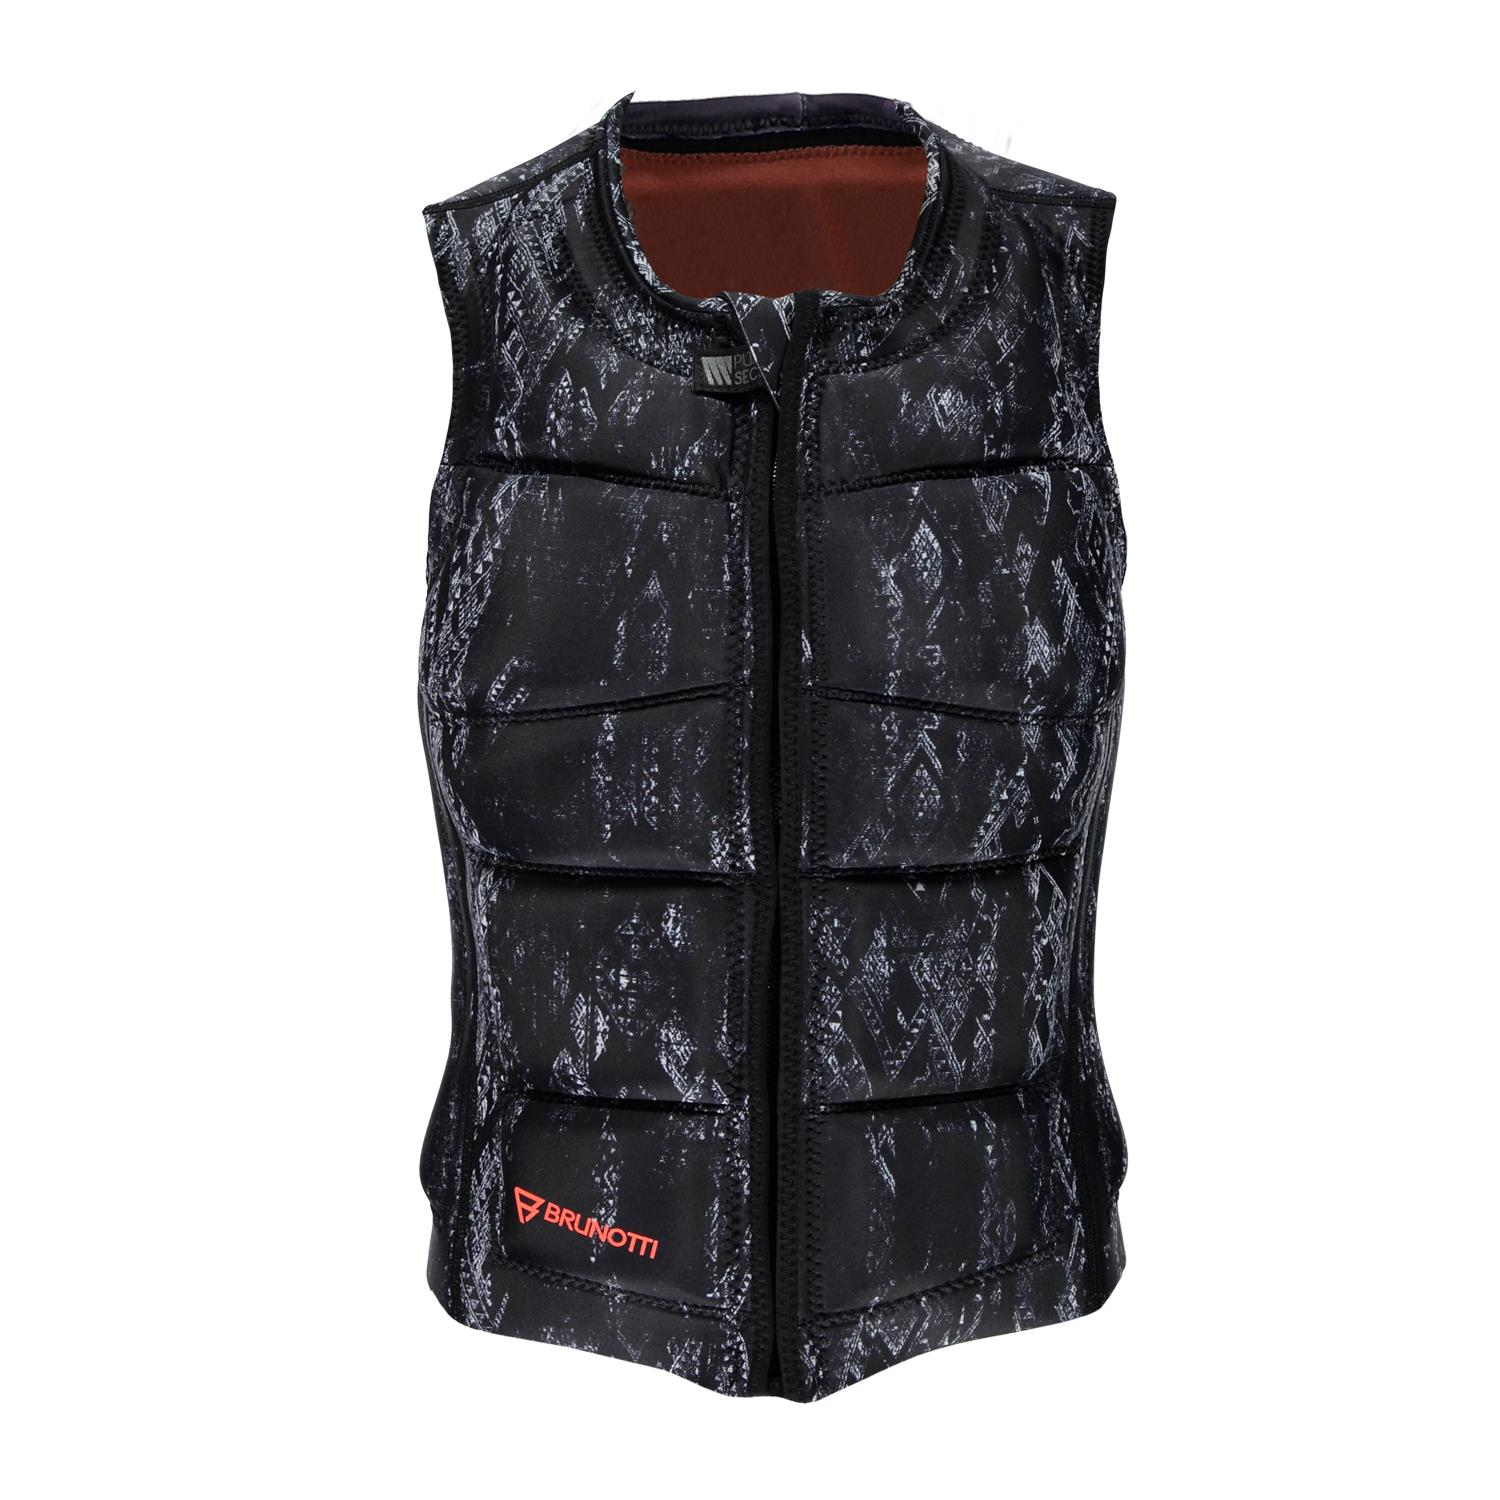 FADED WAKEVEST FZ WOMEN VEST BLACK BRUNOTTI 2018